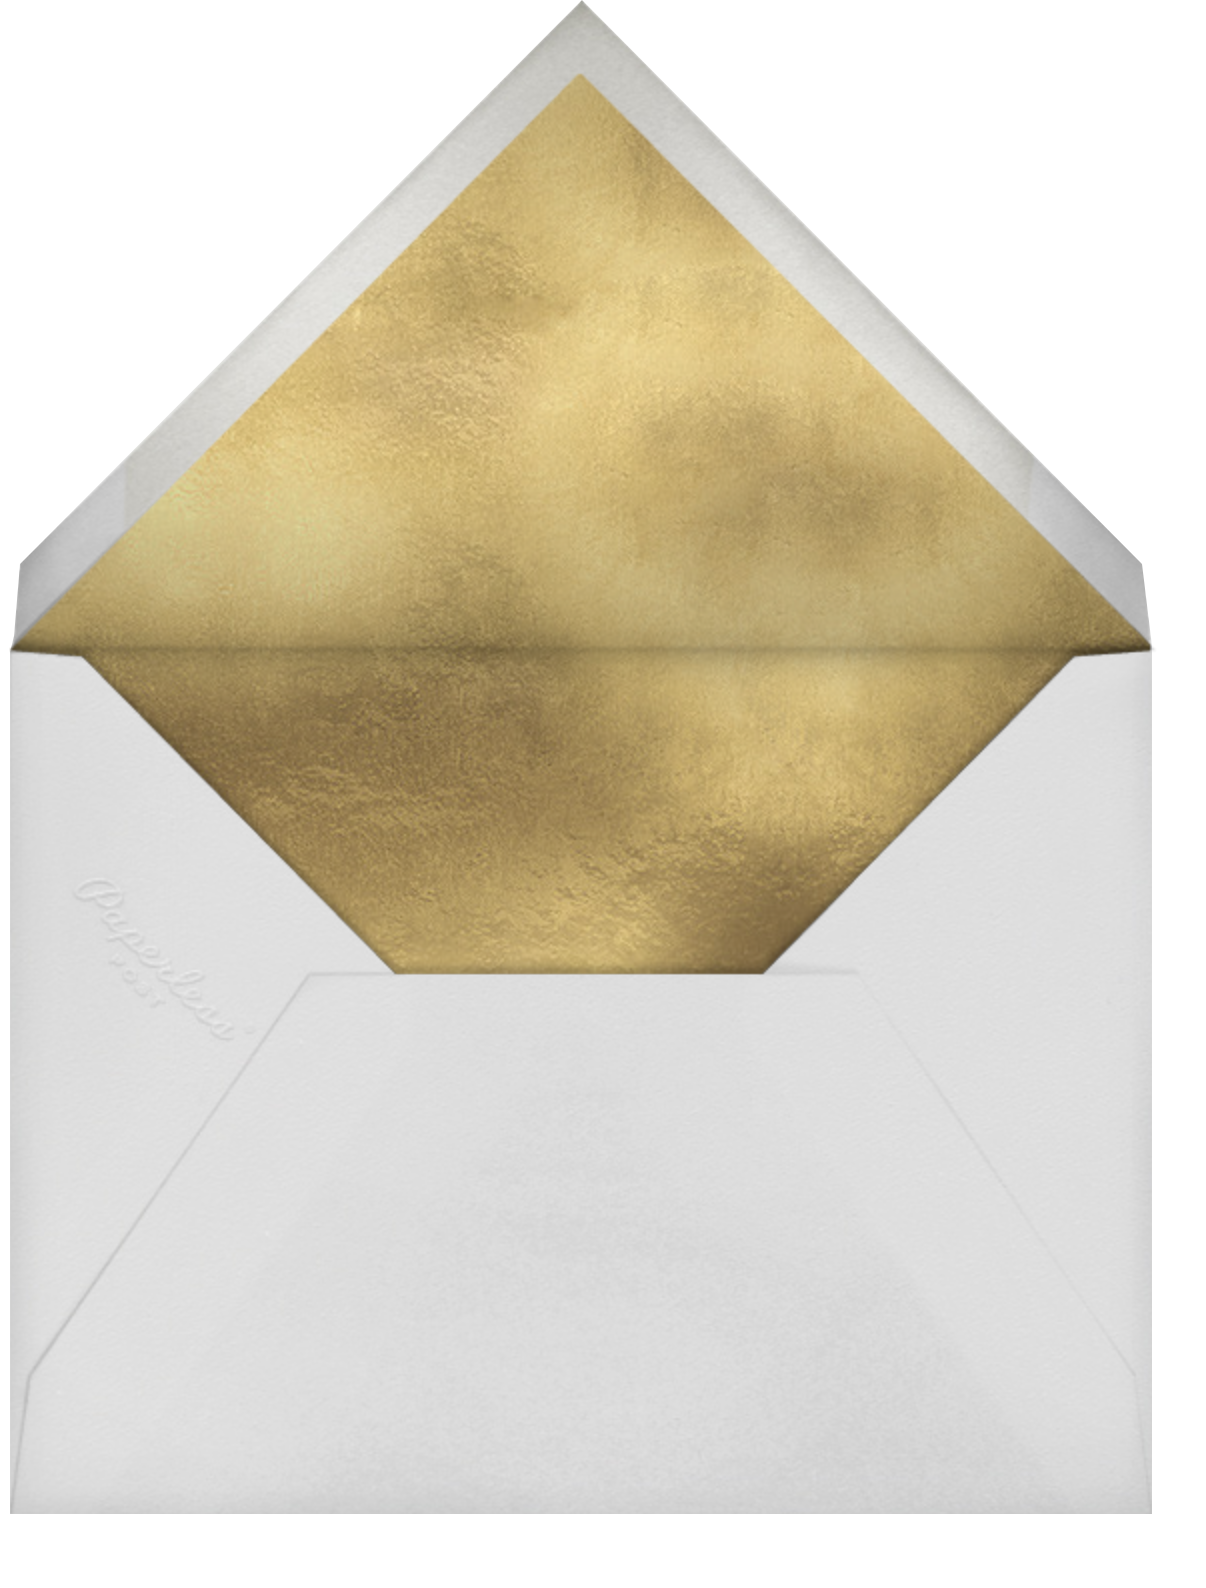 Amaranth Garland (Invitation) - Rifle Paper Co. - All - envelope back